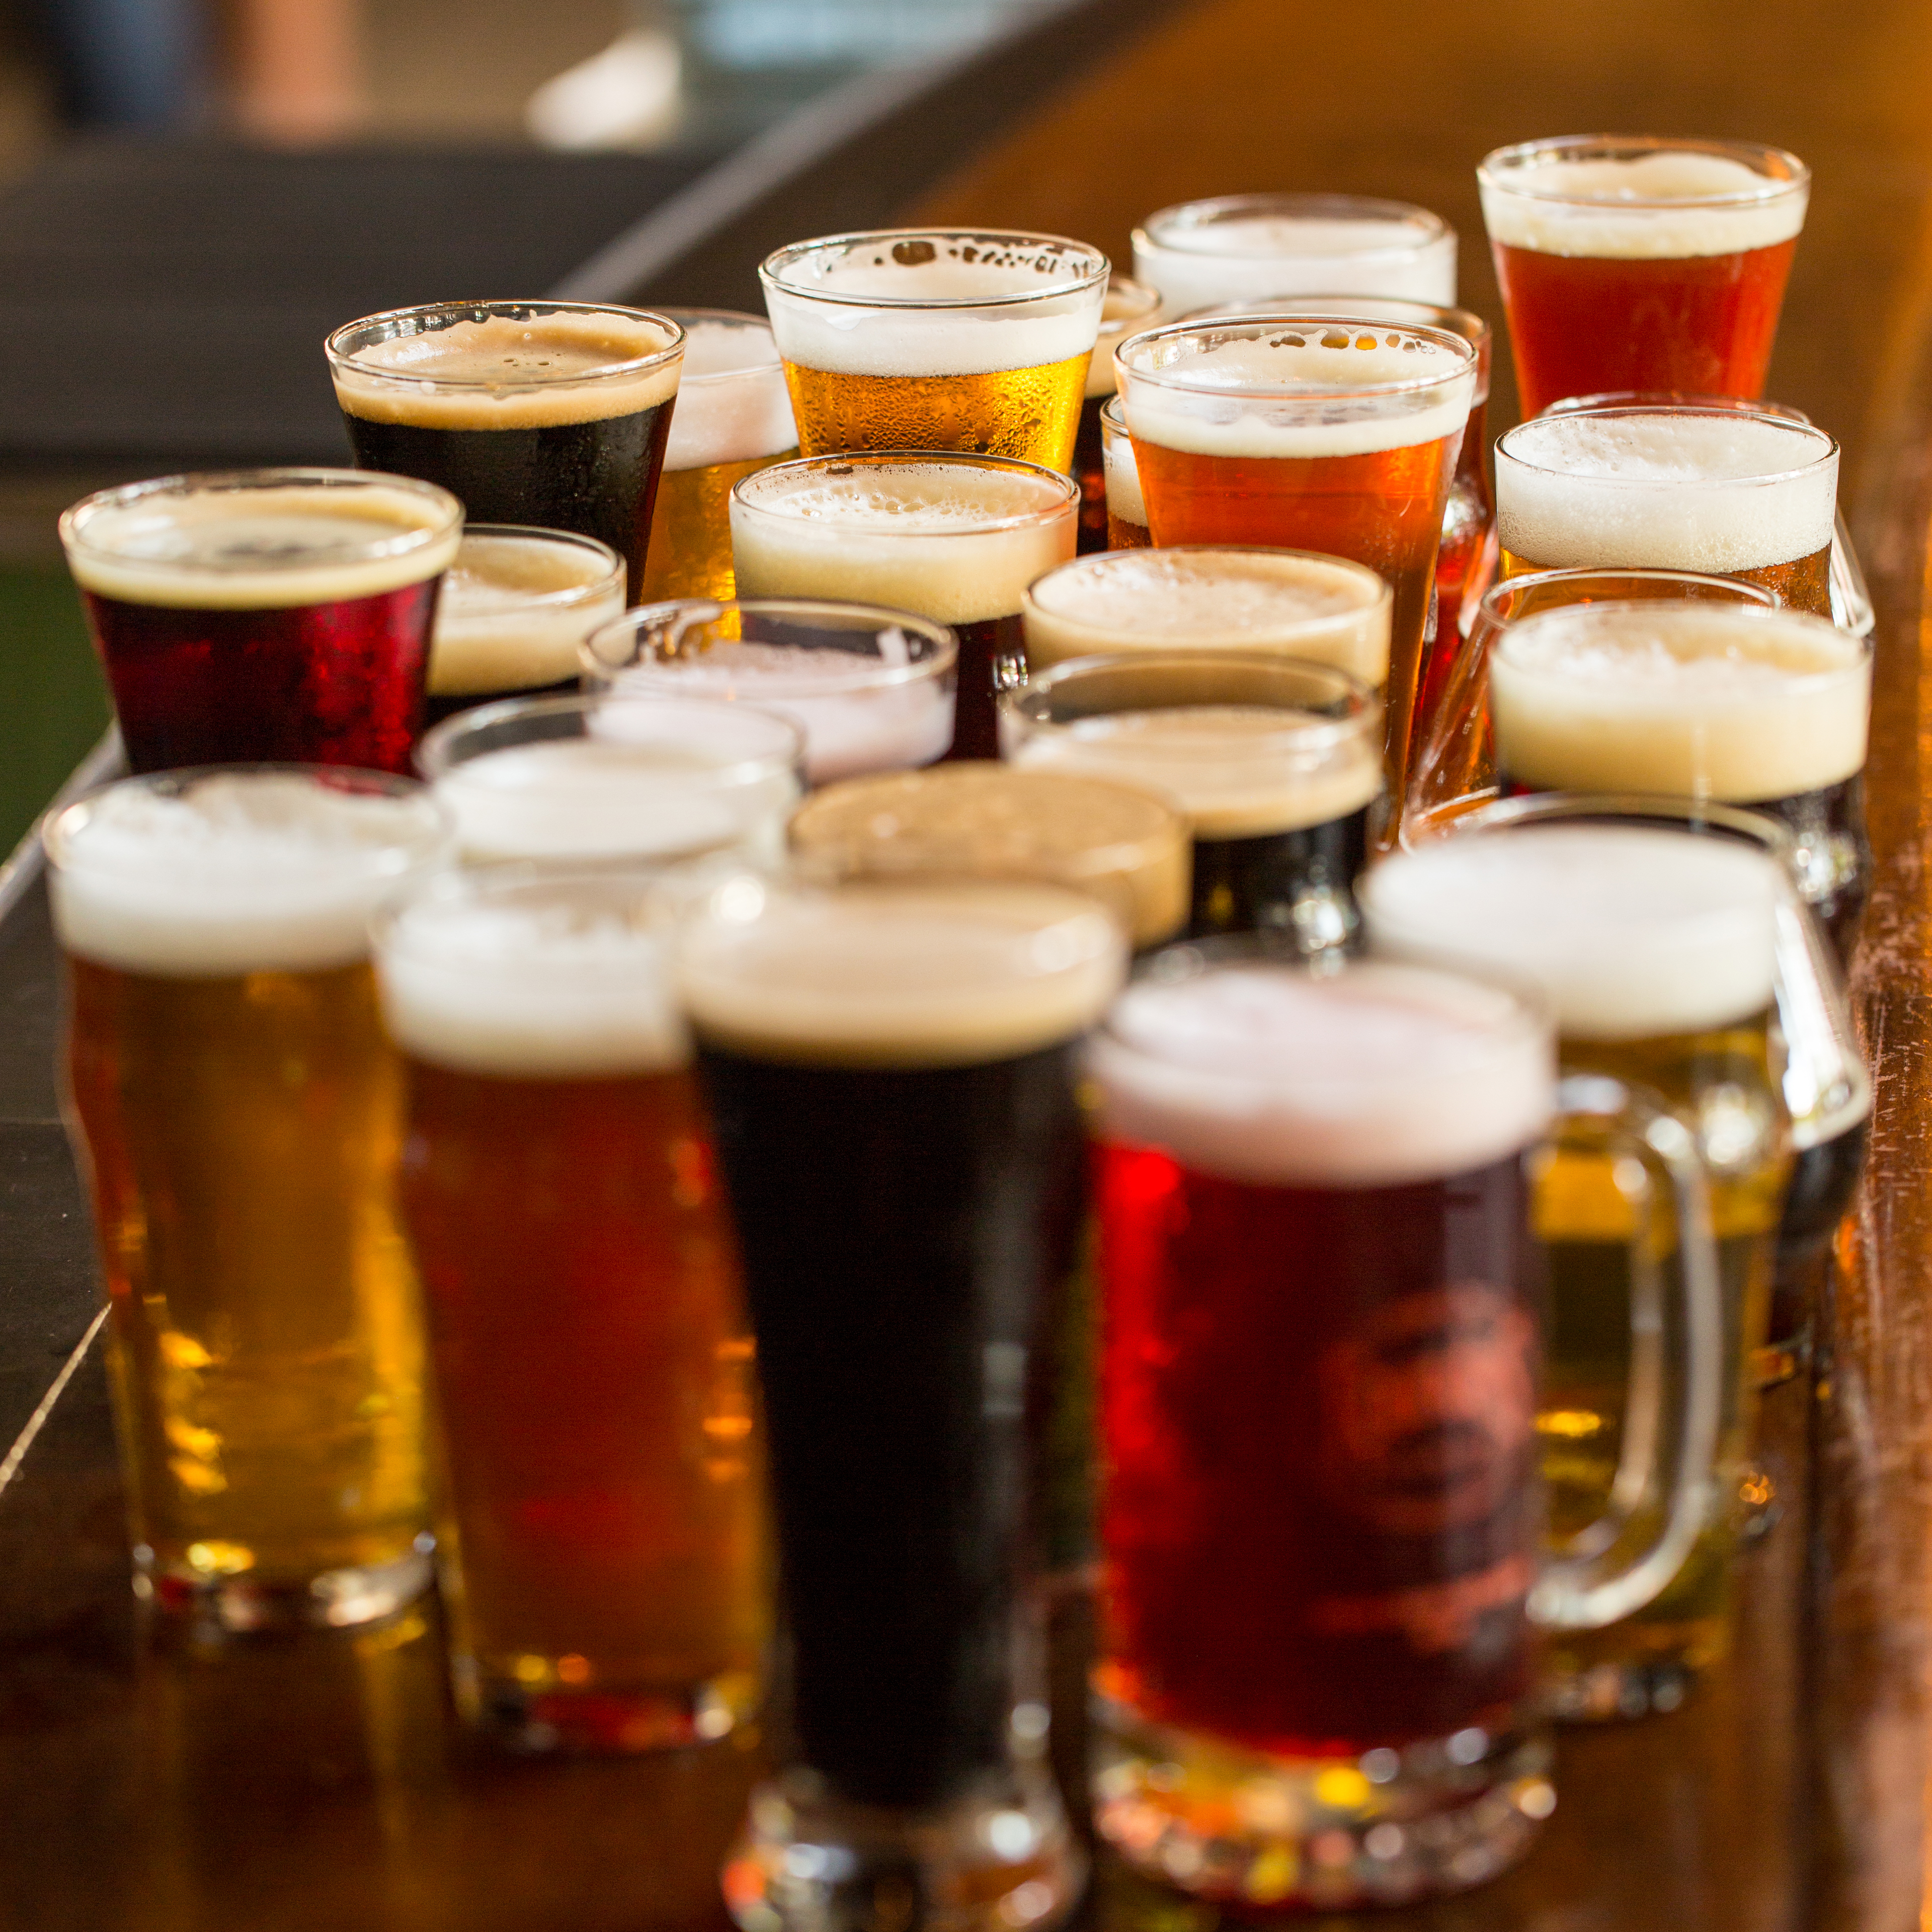 Many glasses of Founders beer crowded together on the bar